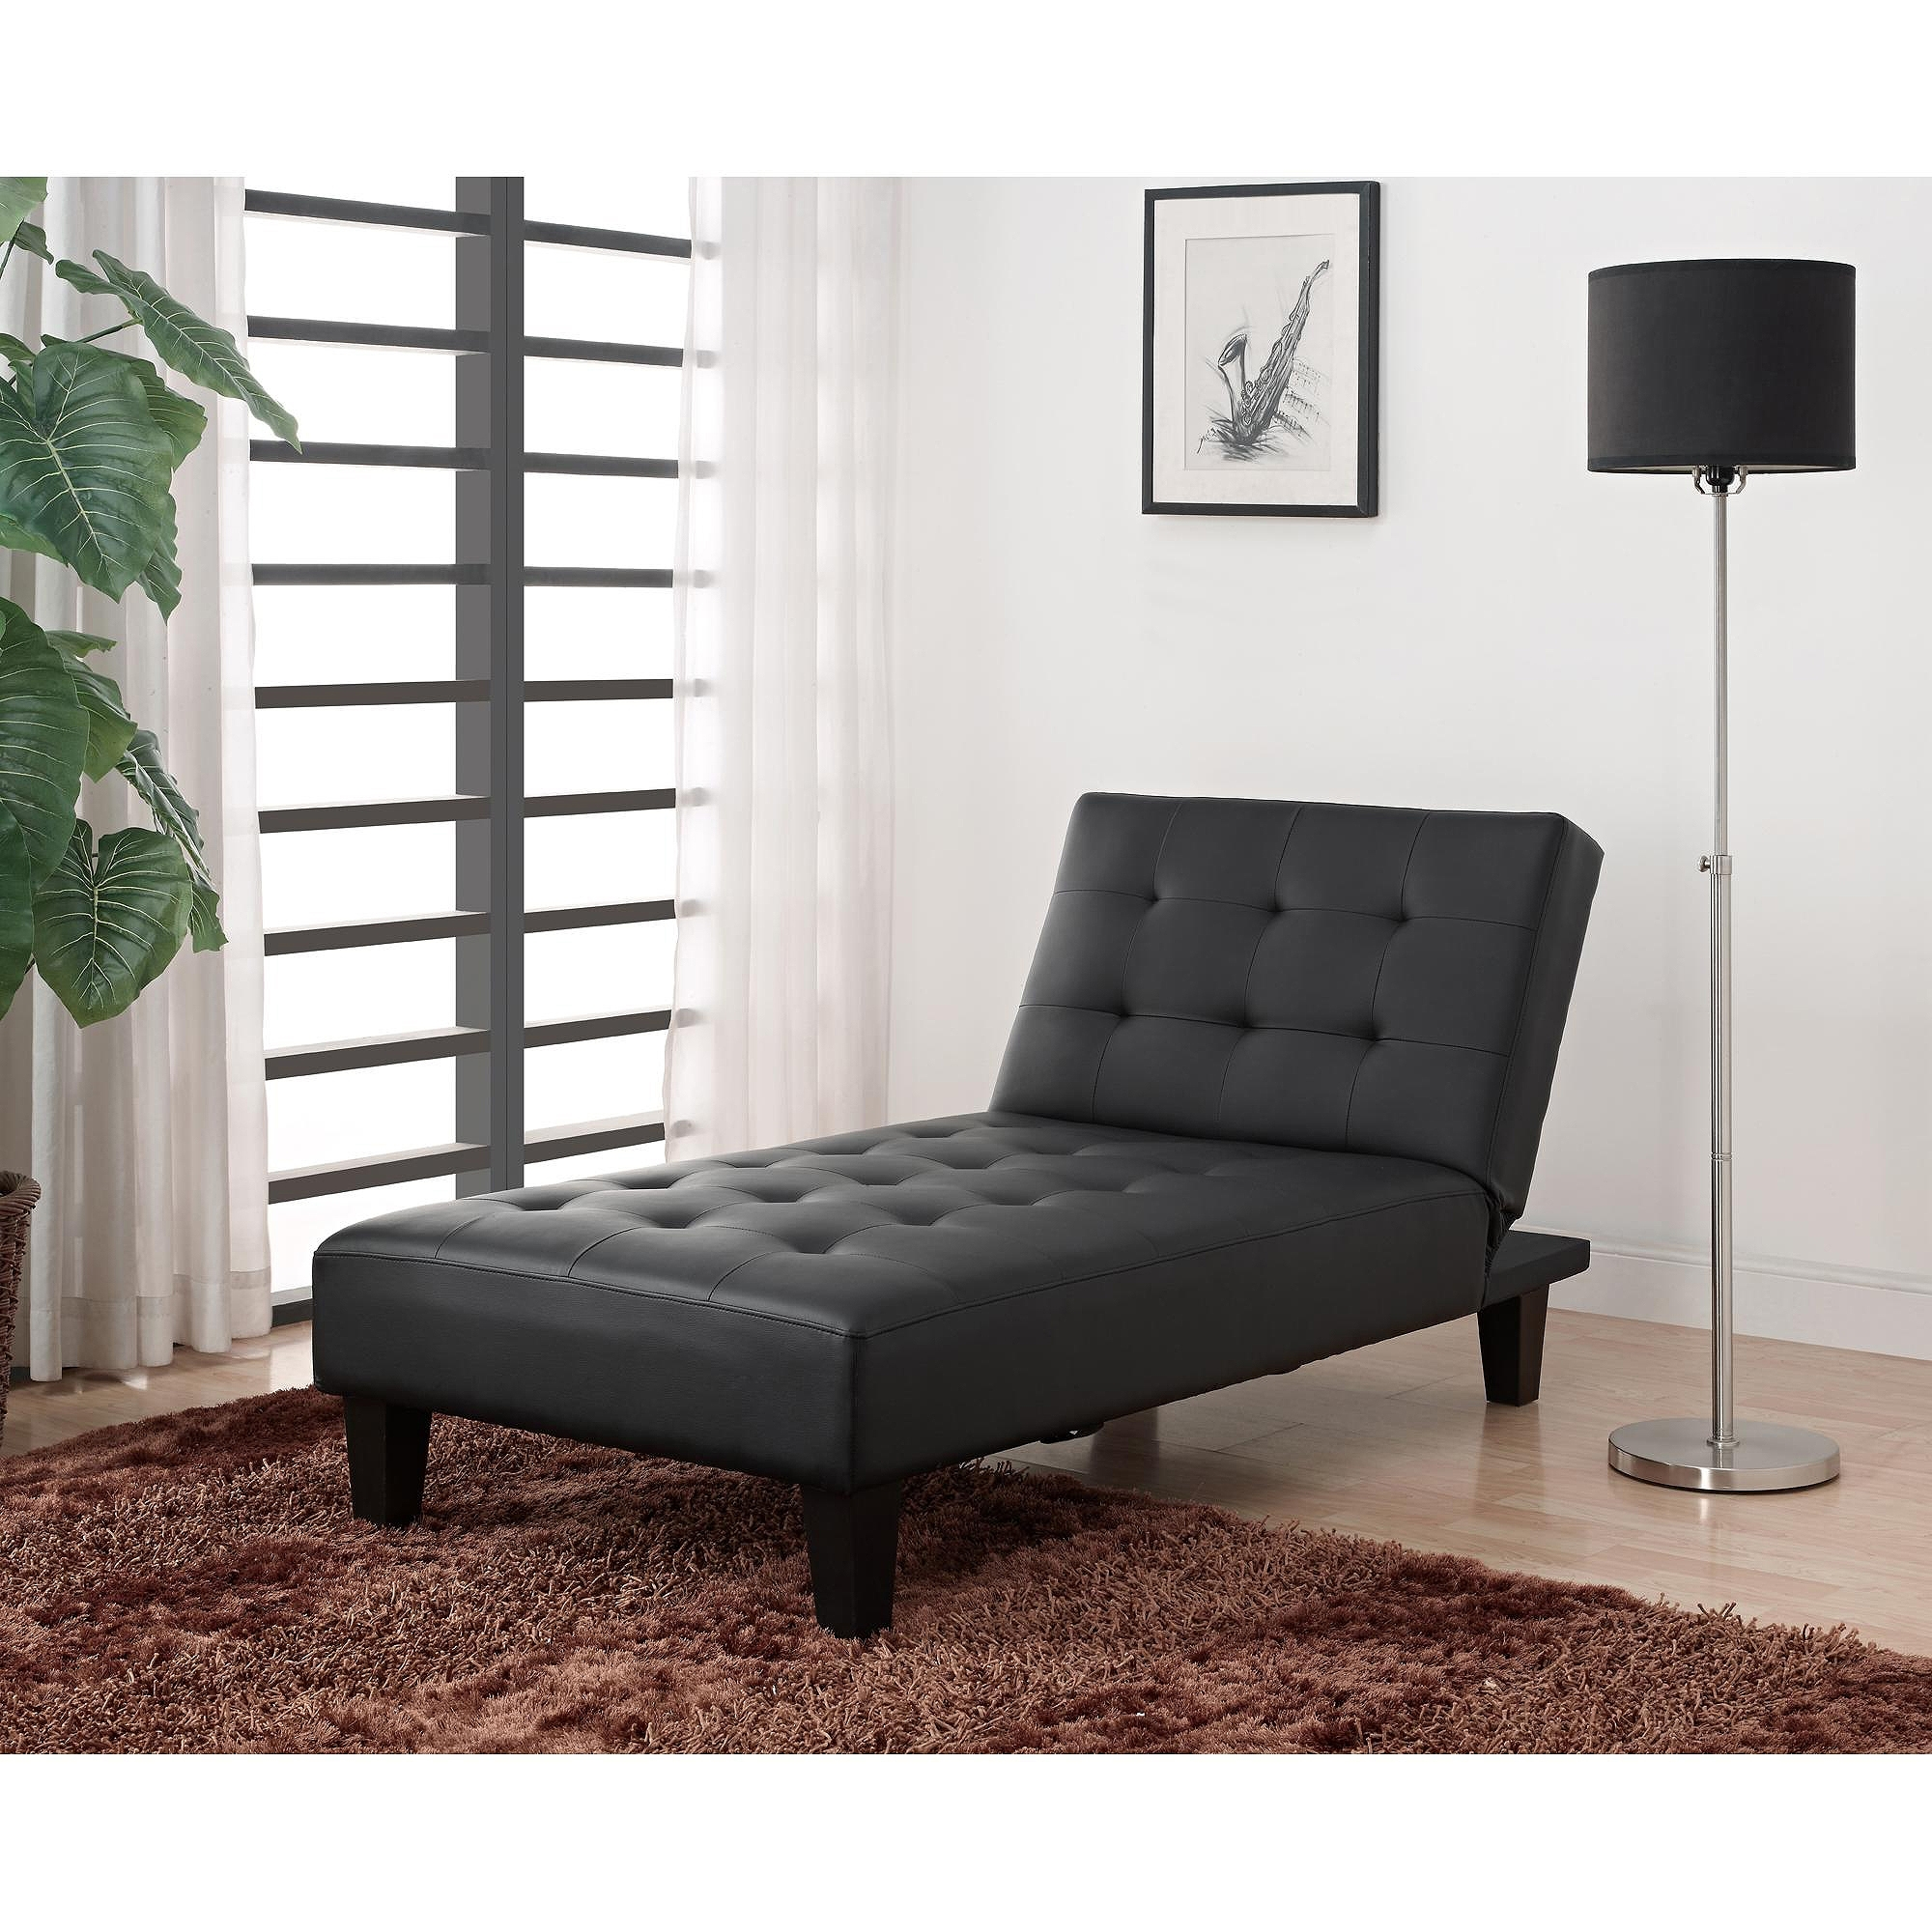 Most Current Futon Chaises Intended For Julia Futon Chaise Lounger, Black – Walmart (View 4 of 15)